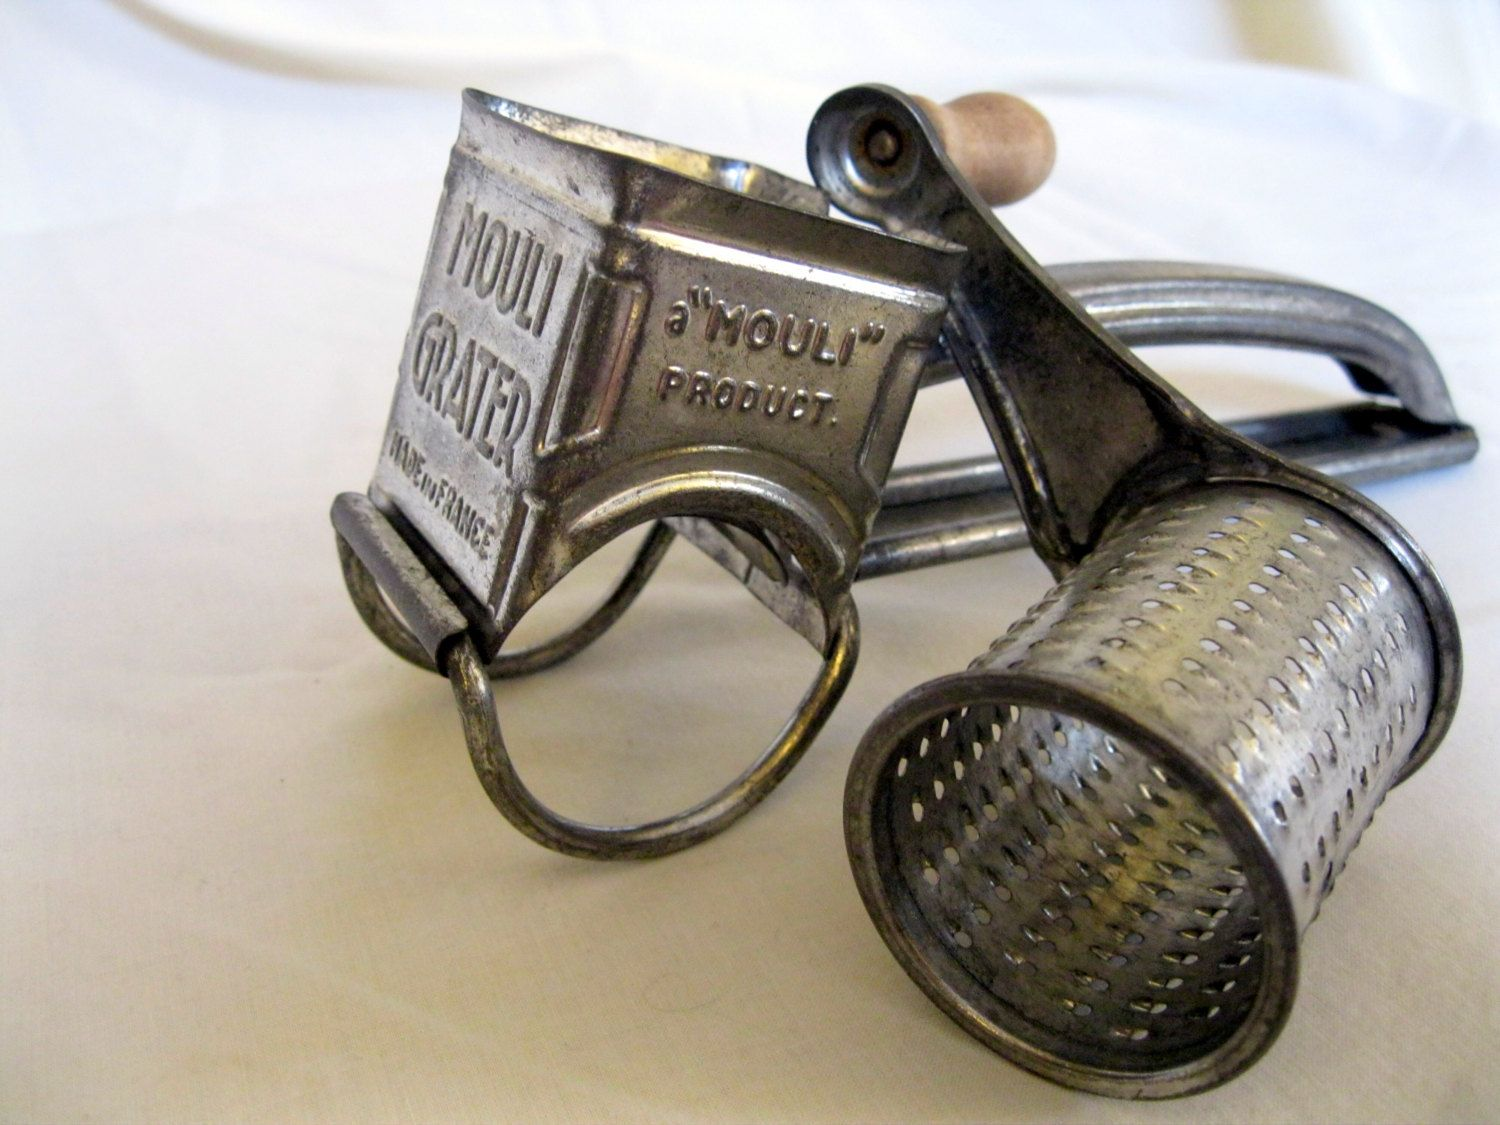 Vintage Mouli Grater Made In France Stainless Steel Perfect For Grating Parm Over Your Salads Le Moulin Souvenirs D Enfance Made In France